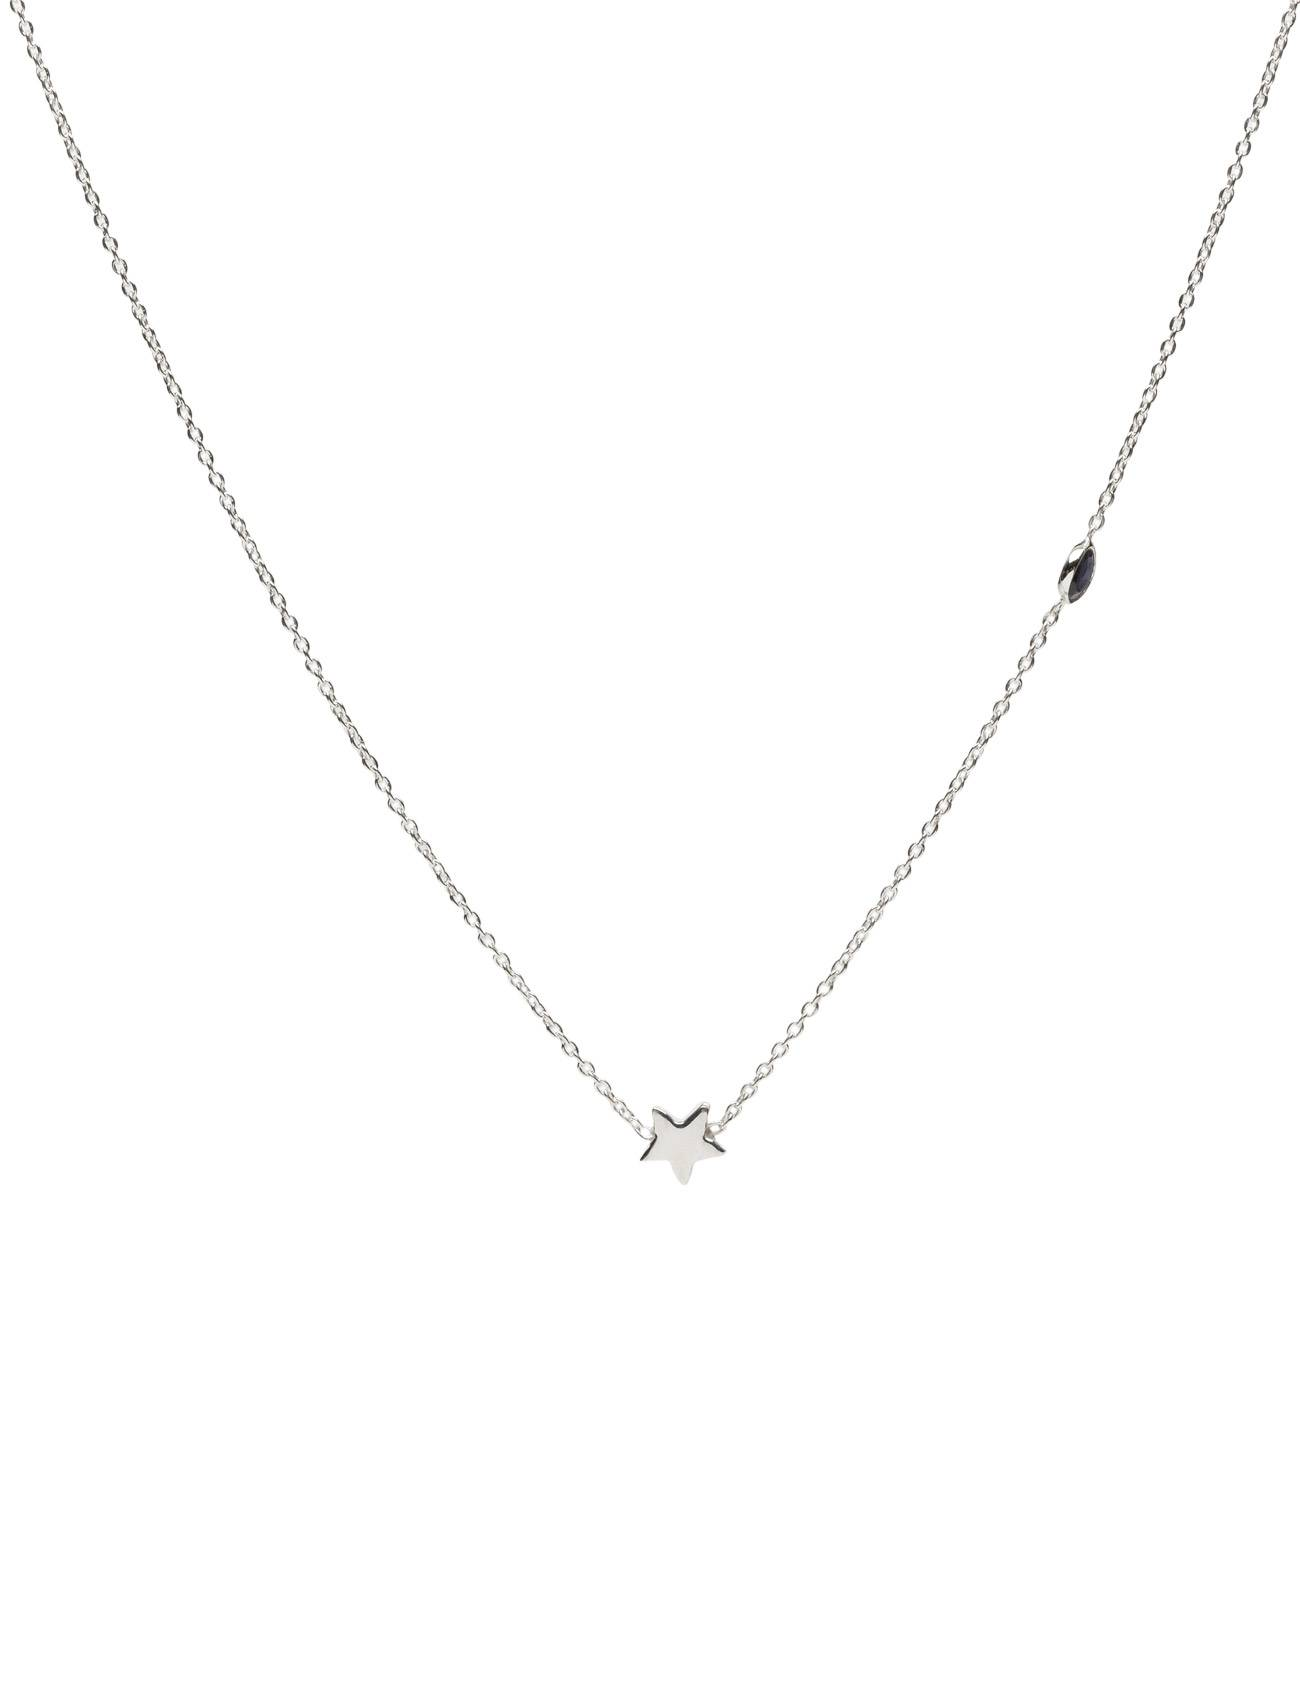 Syster P Sparkle Necklace Silver Star Blue Iolite